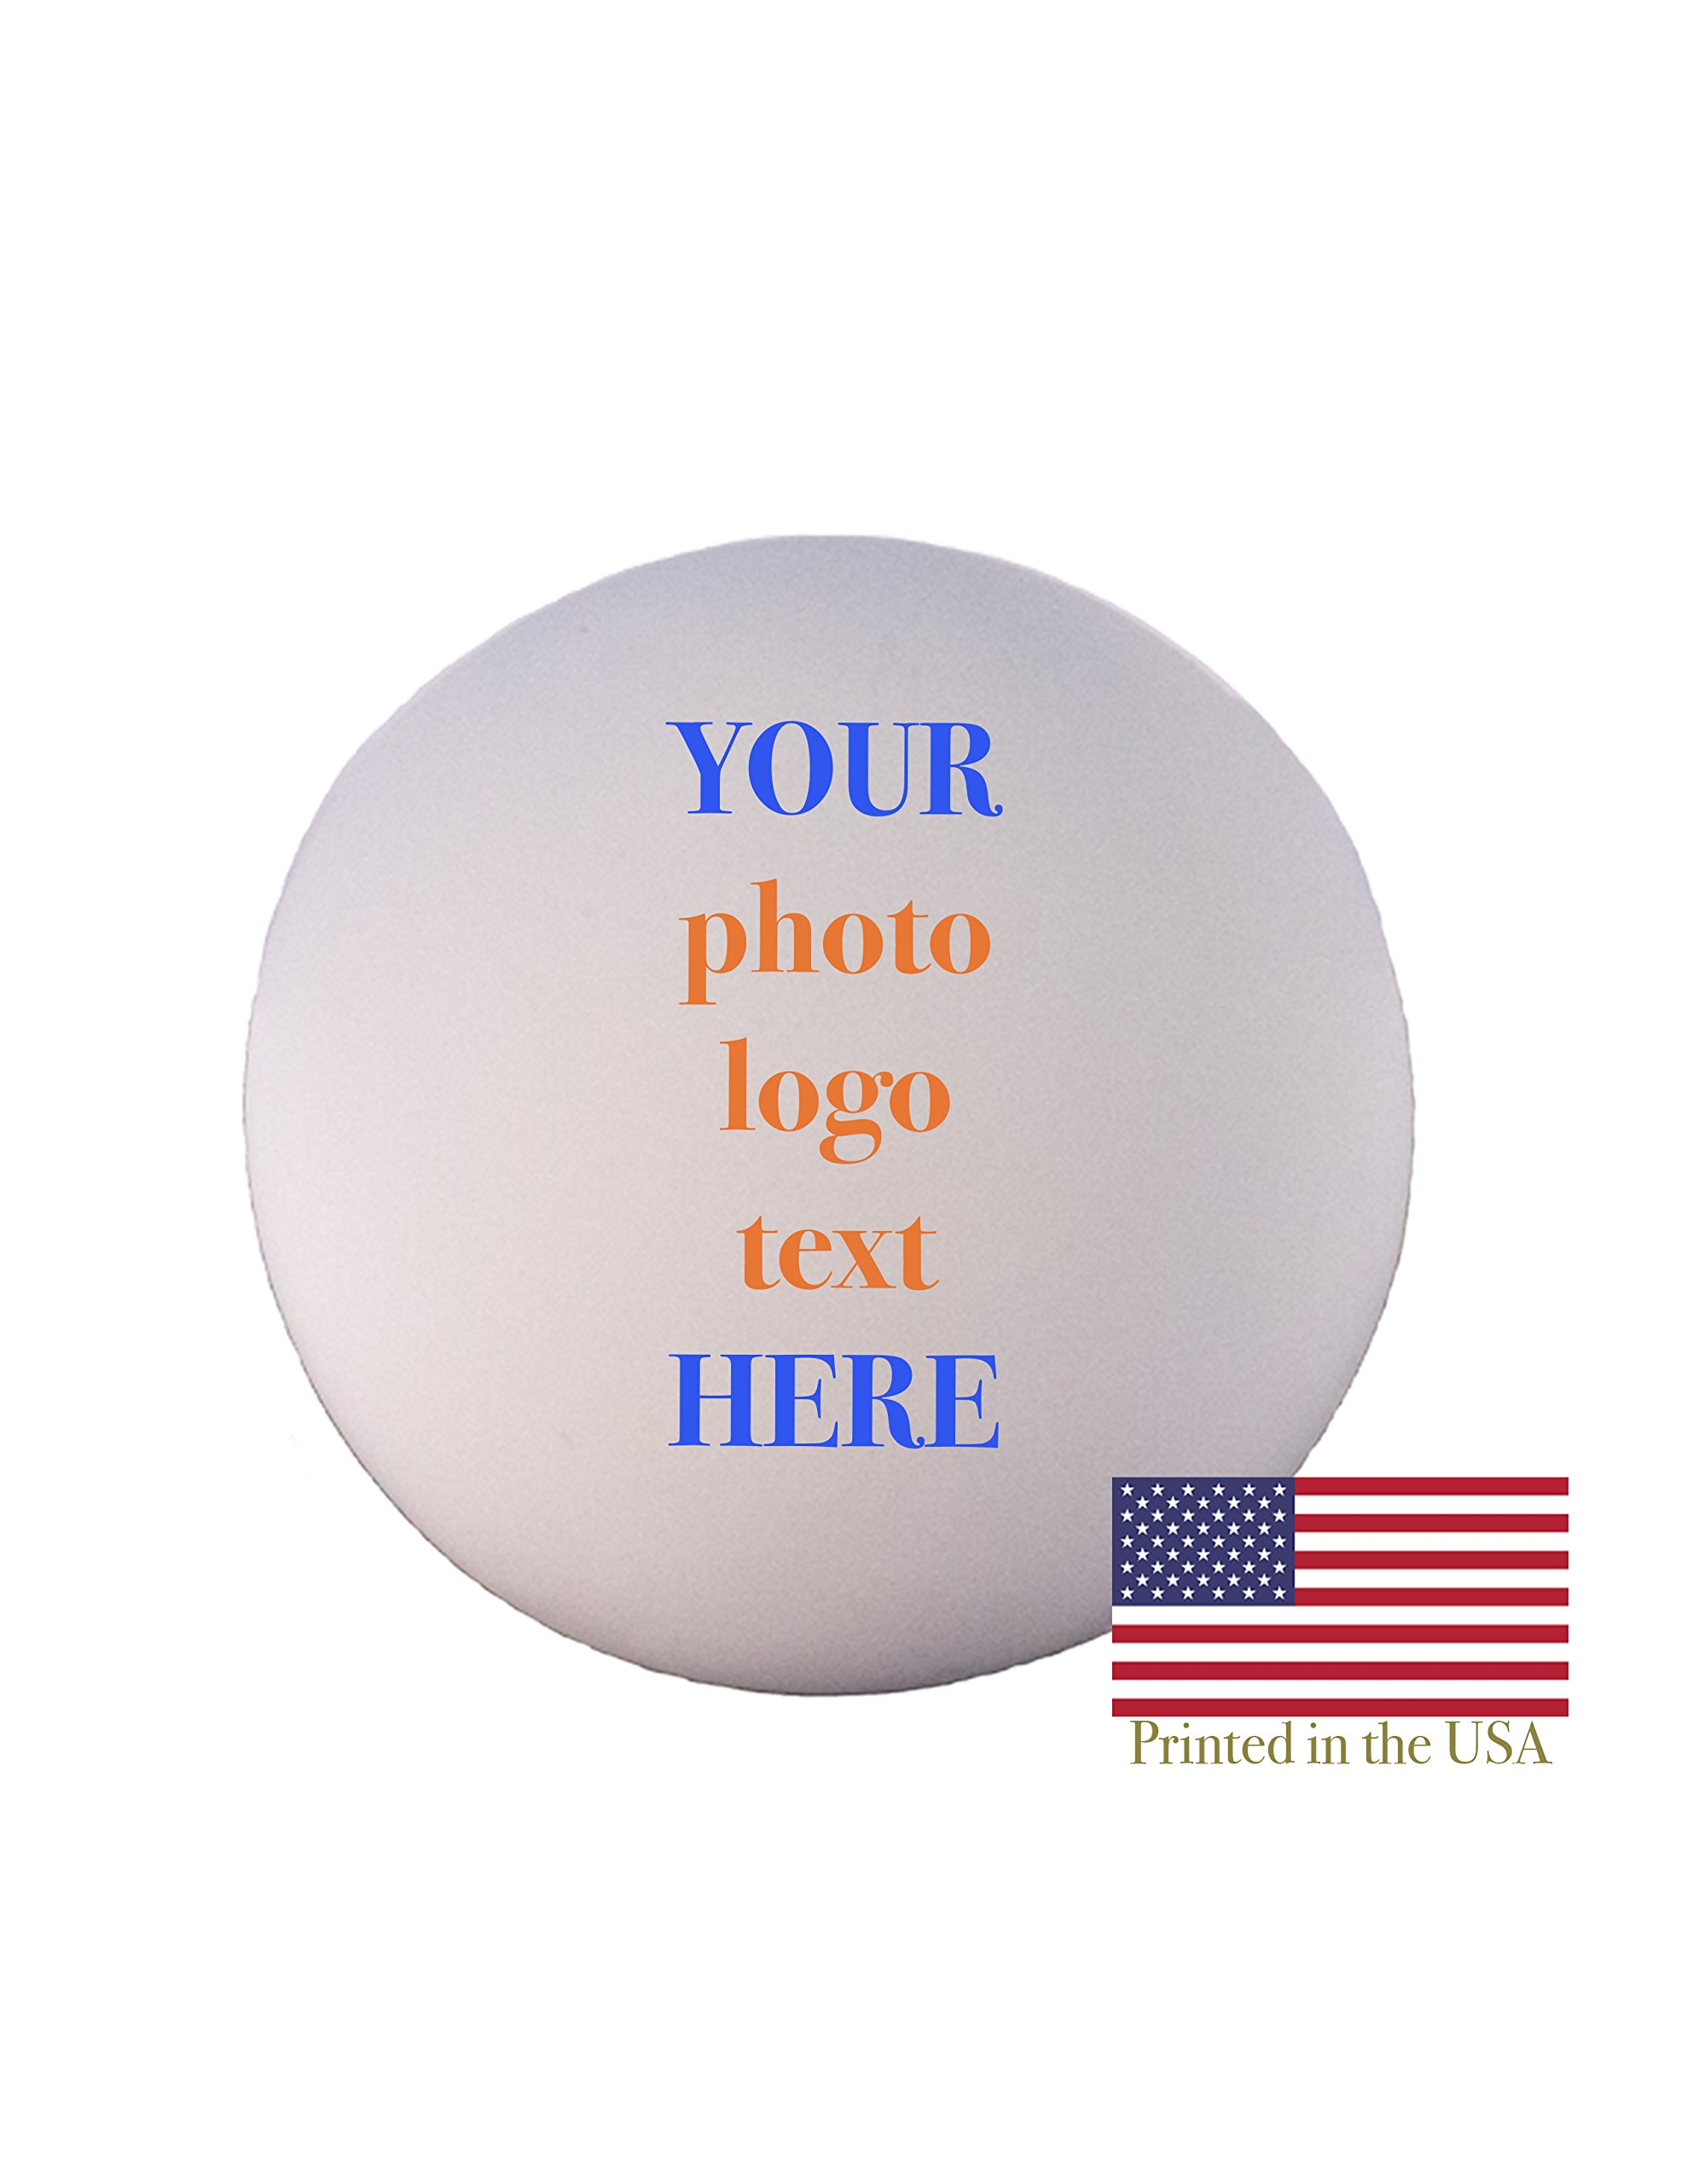 Custom Personalized Lacrosse Ball Ships in 3 Business Days, High Resolution Photos, Logos & Text on Lacrosse Balls for Players, Trophies, MVP Awards, Coaches, Personalized Gifts